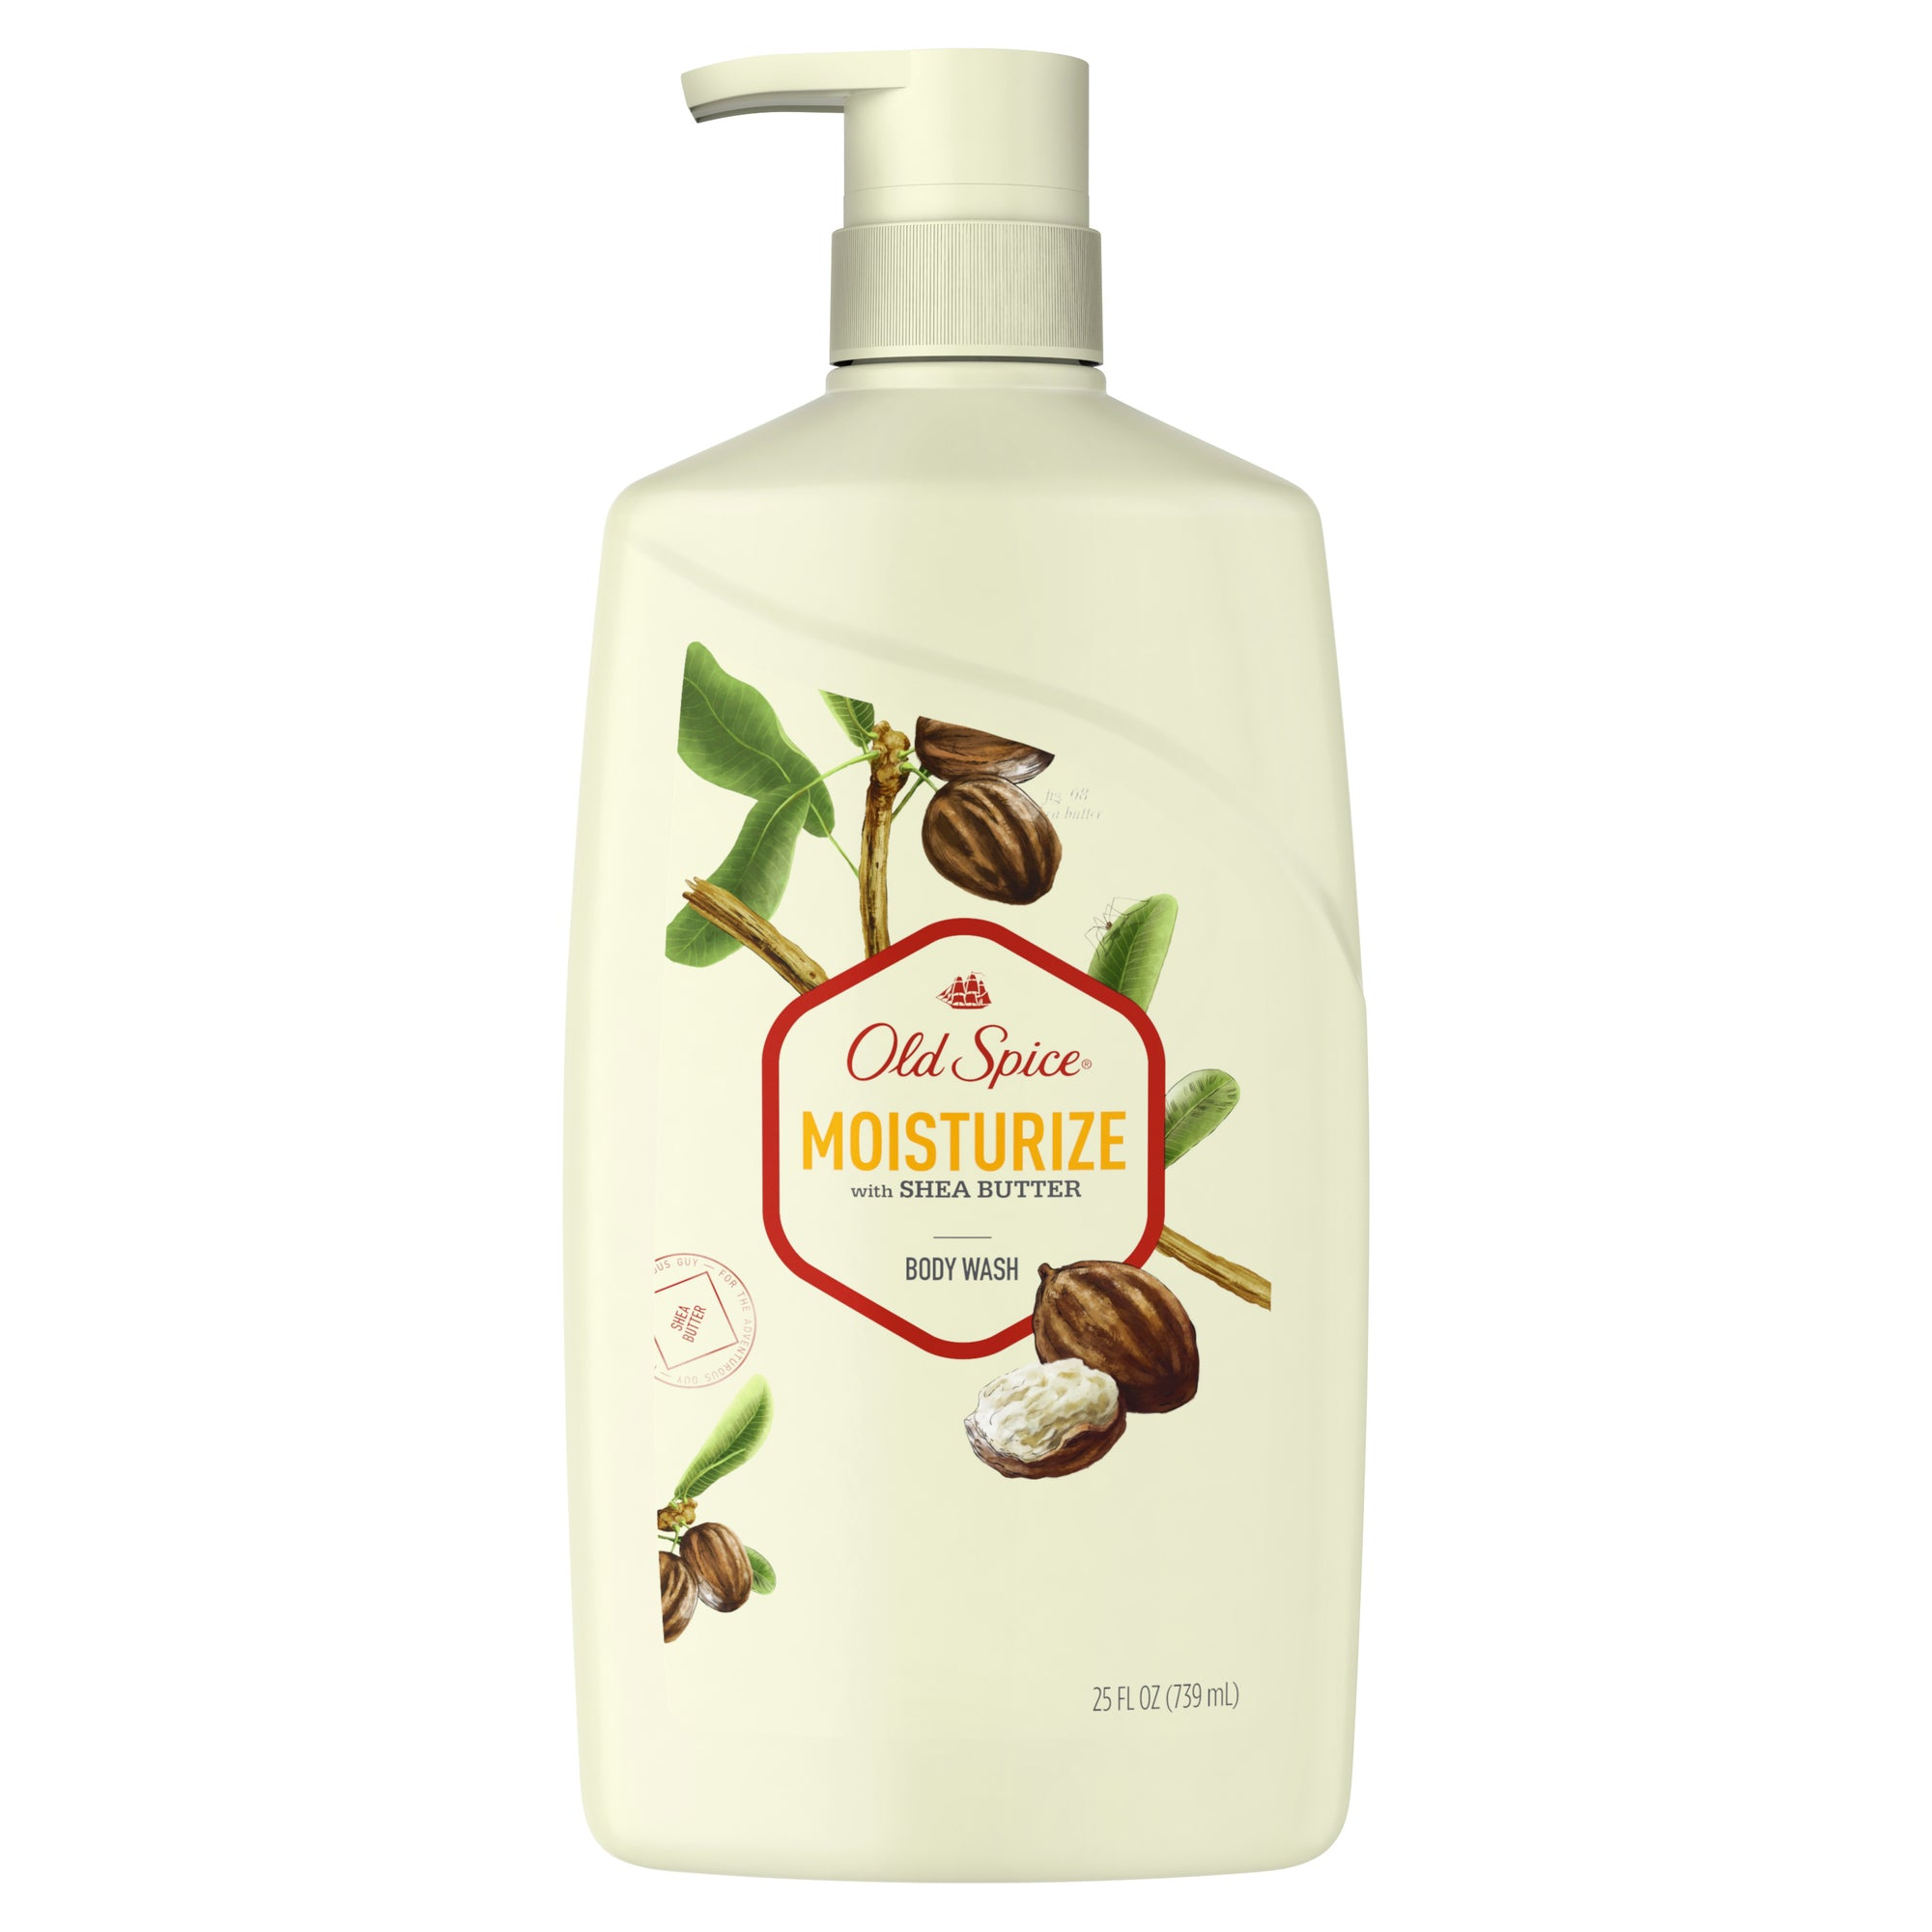 Old Spice Body Wash for Men, Moisturize With Shea Butter Body Wash Scent Inspired by Nature, 27 oz